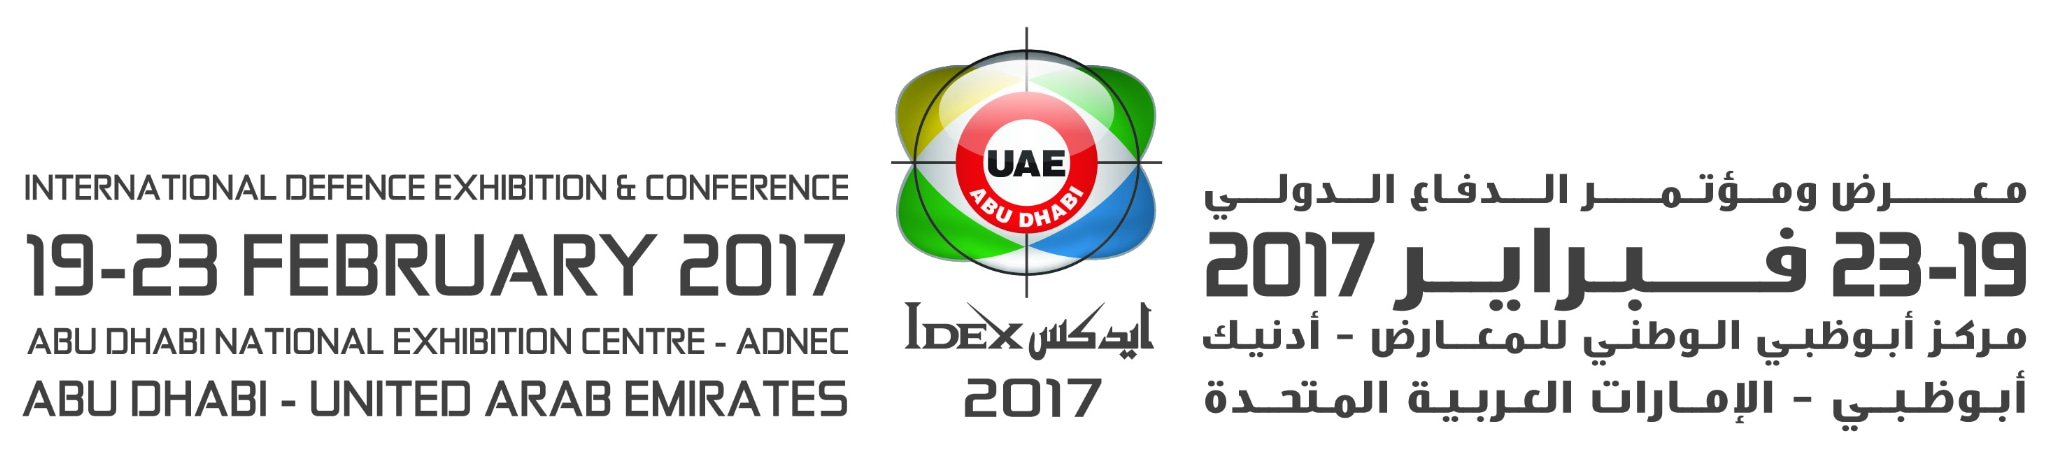 idex-2017-full-logo